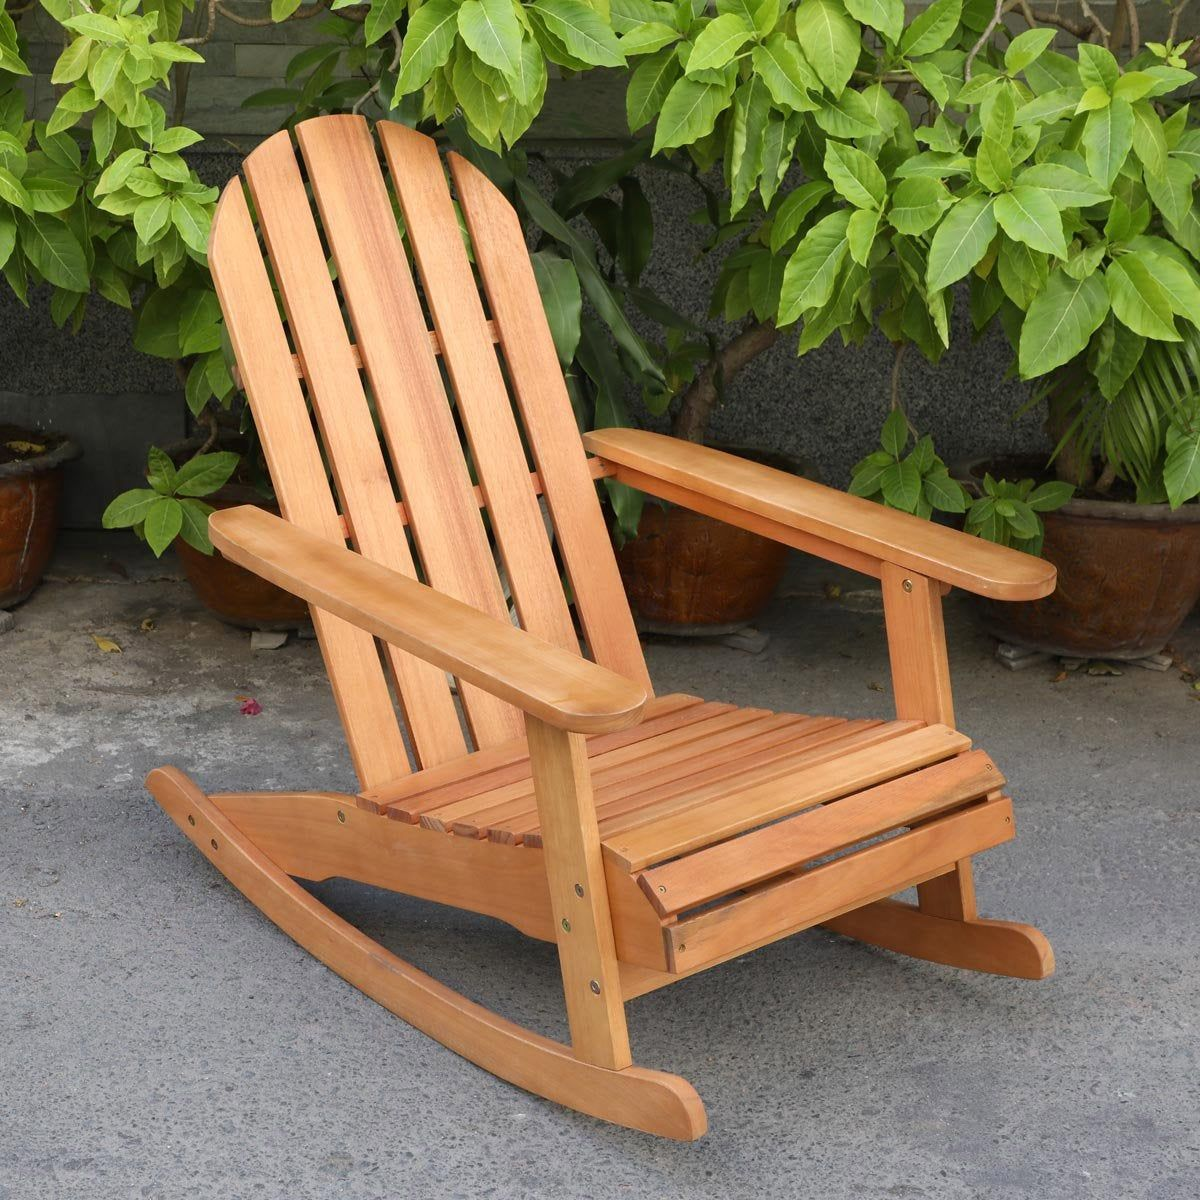 Chaise de jardin en bois Rocking chair naturel | Chaise ...